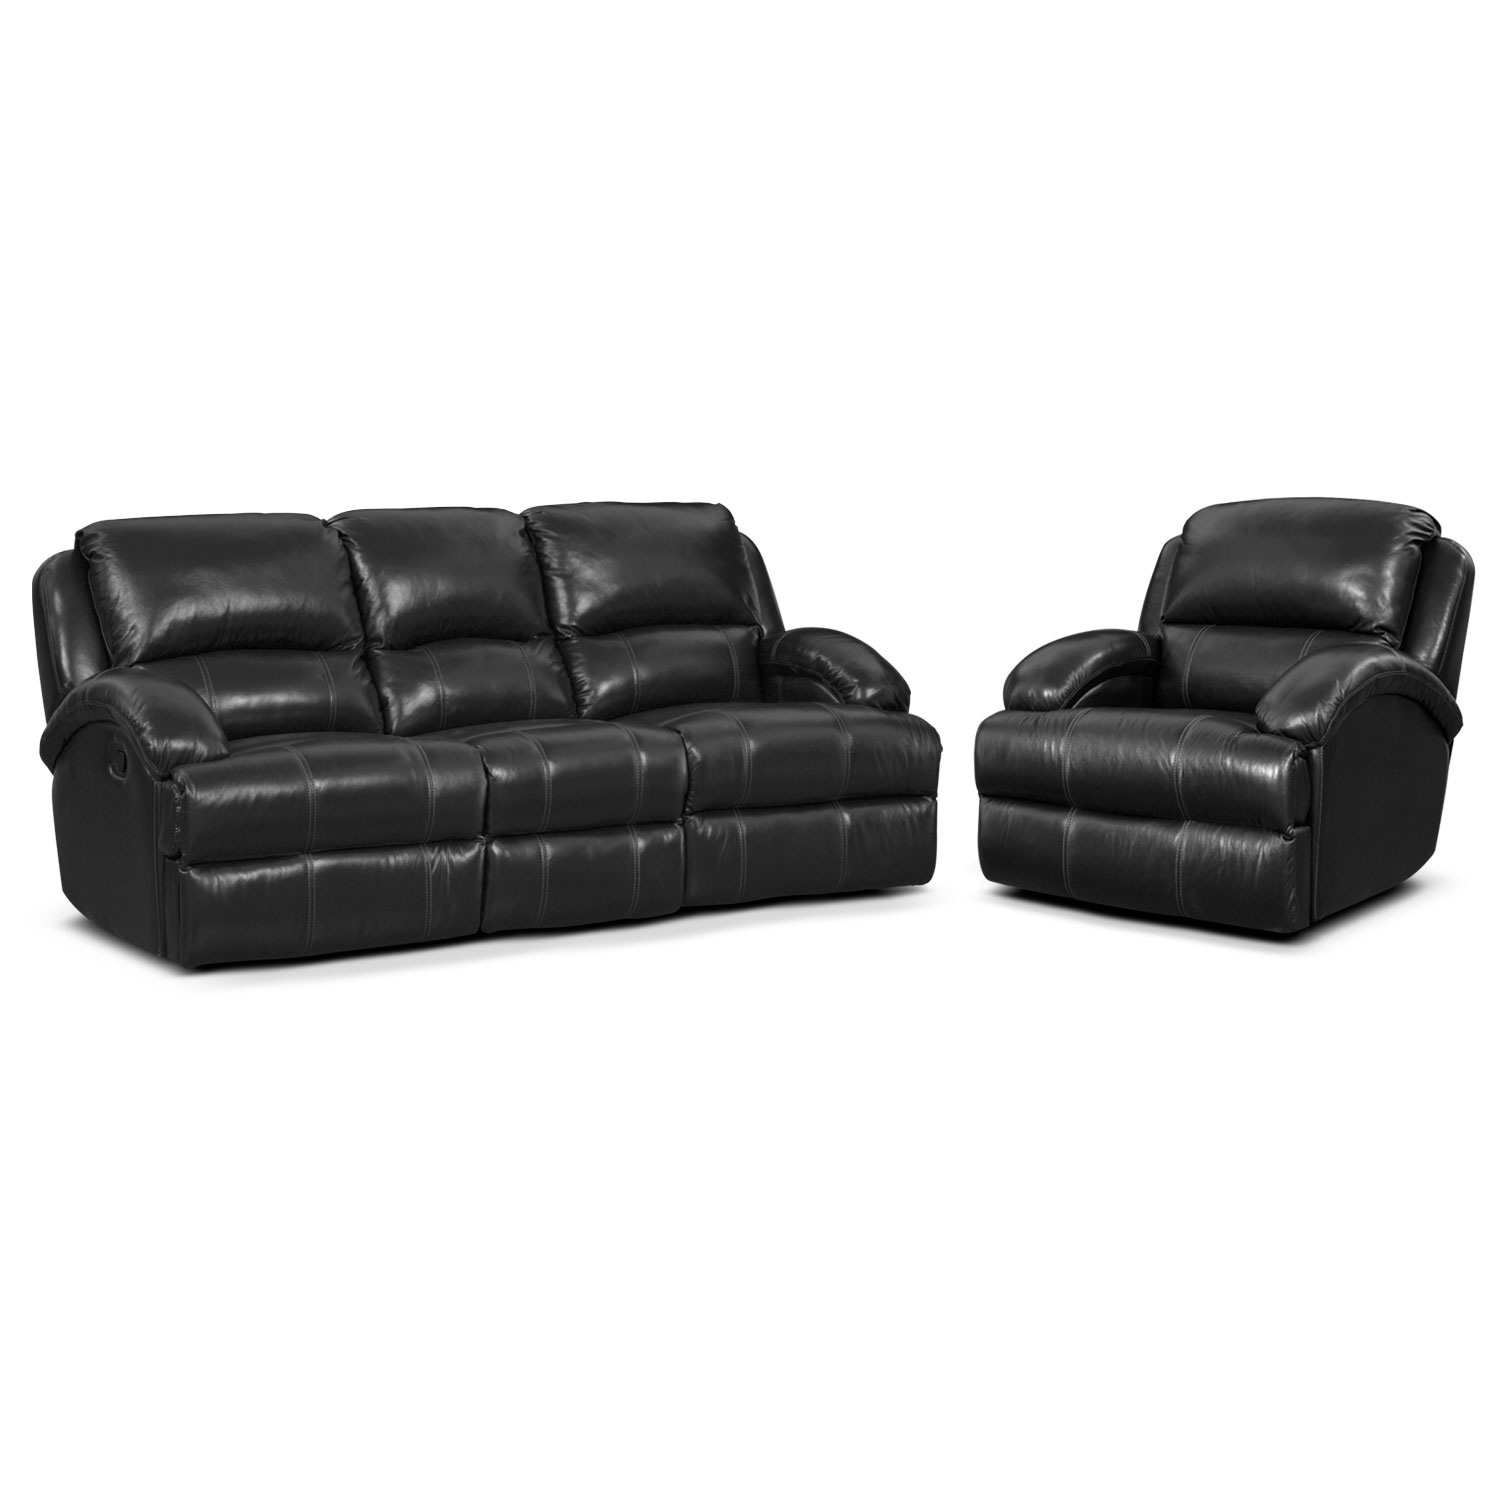 Living Room Furniture - Nolan Dual Reclining Sofa and Glider Recliner Set - Black